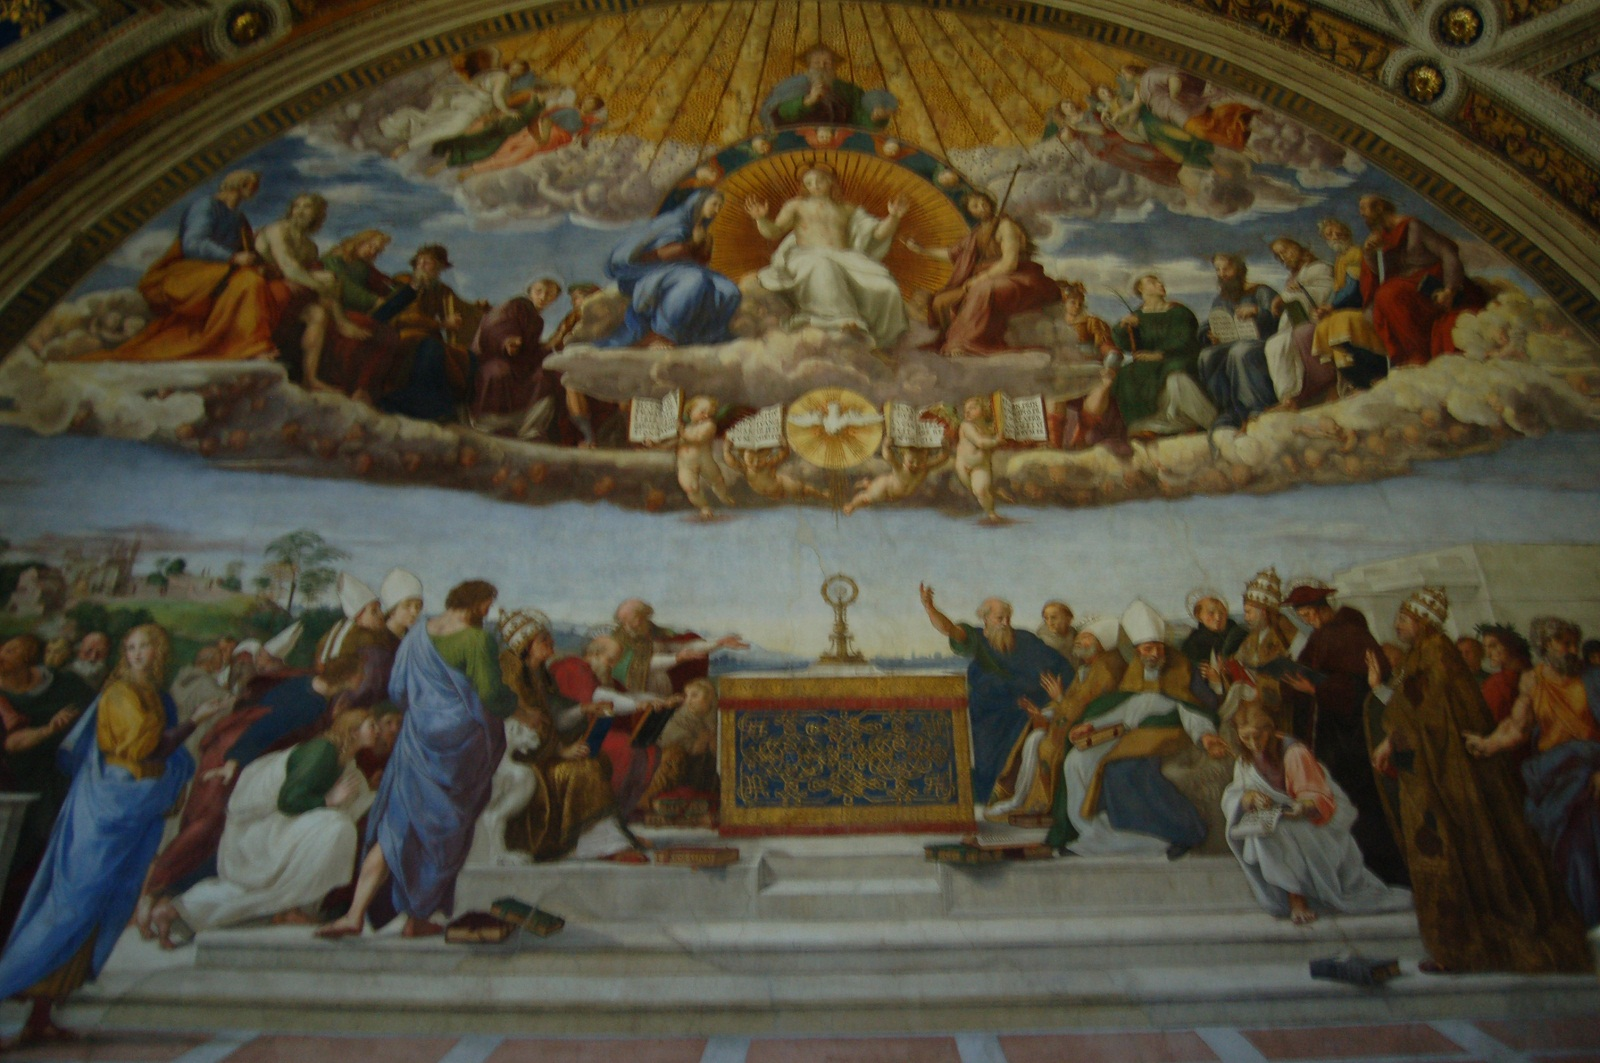 Sistine Chapel, Vatican, Raphael fresco, The School of Athens